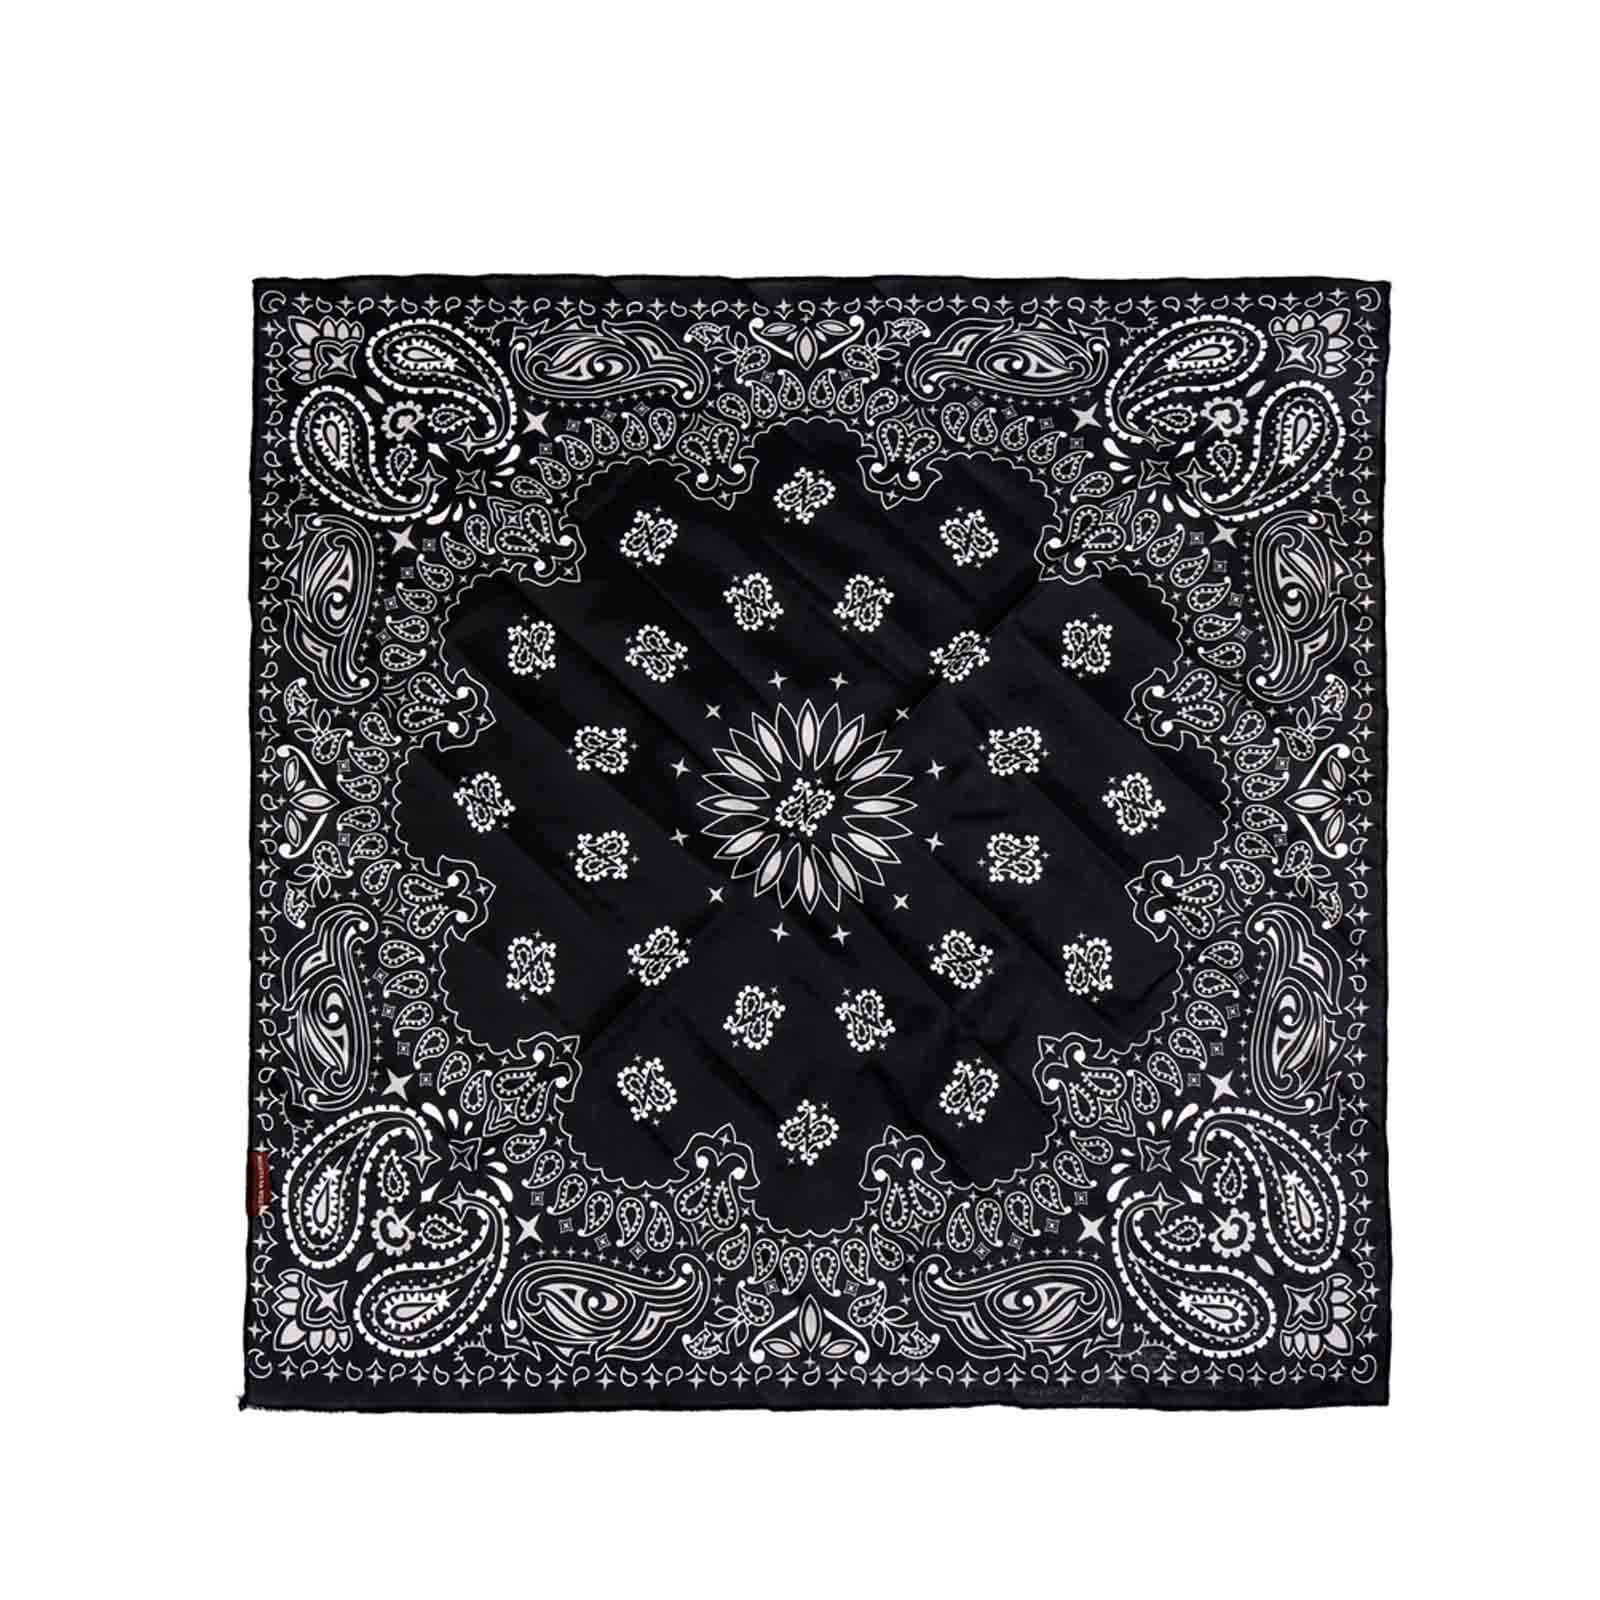 BDN05  American Bling Paisley Mandala Print Bandana- Assorted Colors (12 PCS)